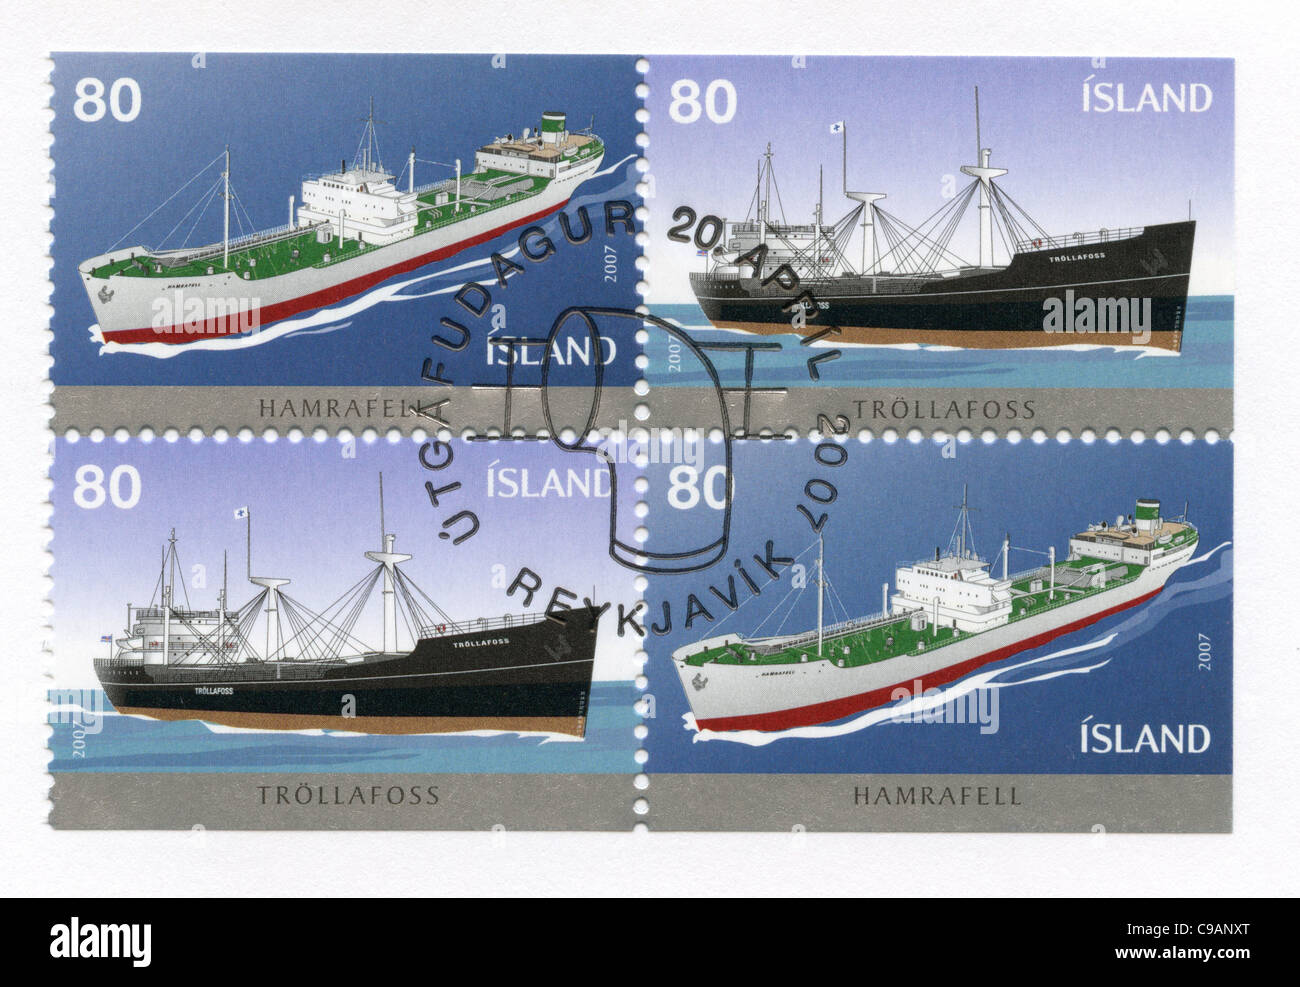 Iceland postage stamps - Stock Image